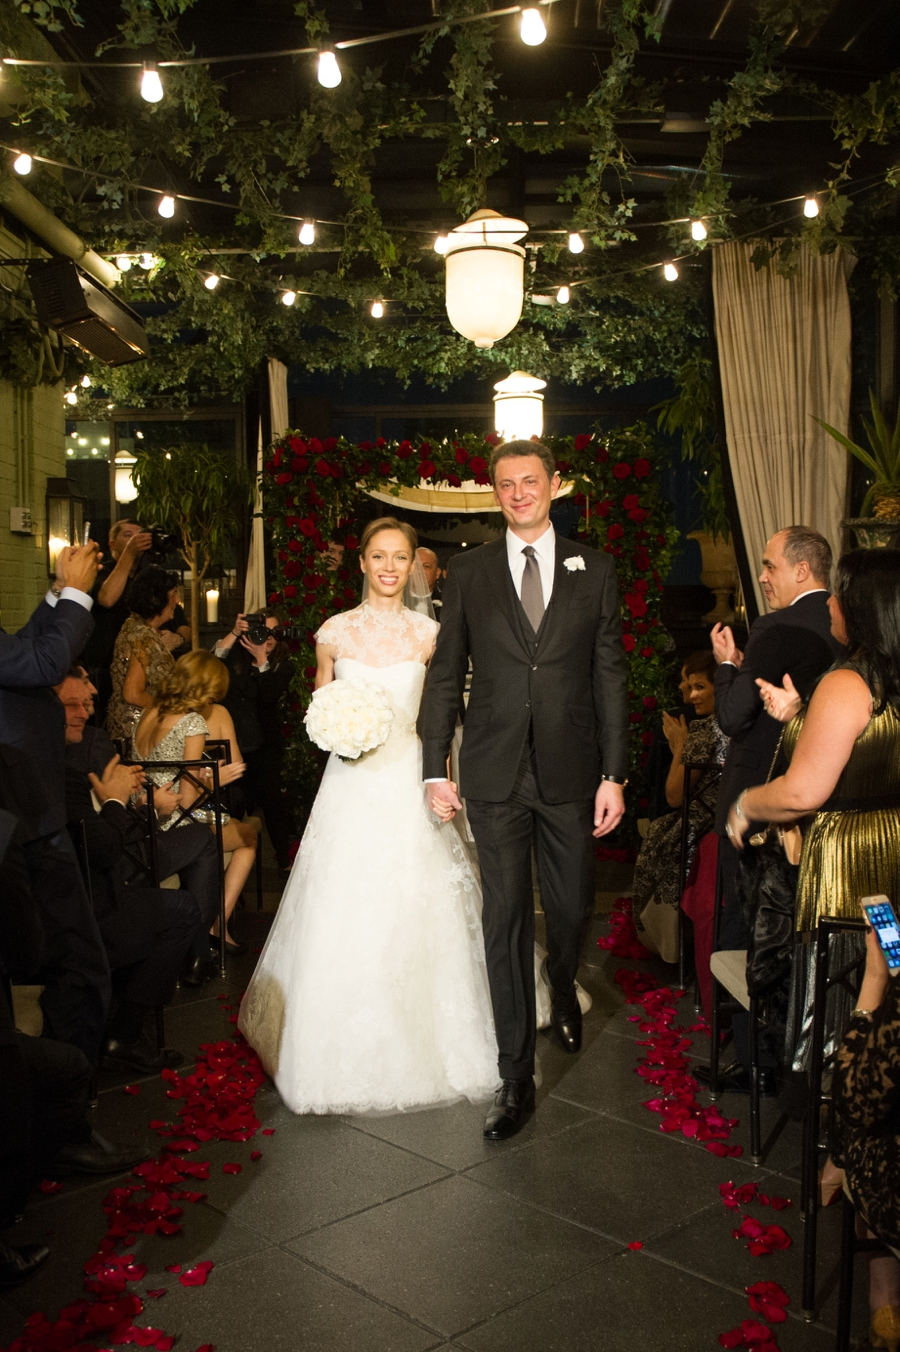 RKP_NEW_YORK_CITY_WEDDING_GRAMERCY_PARK_HOTEL_NL_0014.jpg